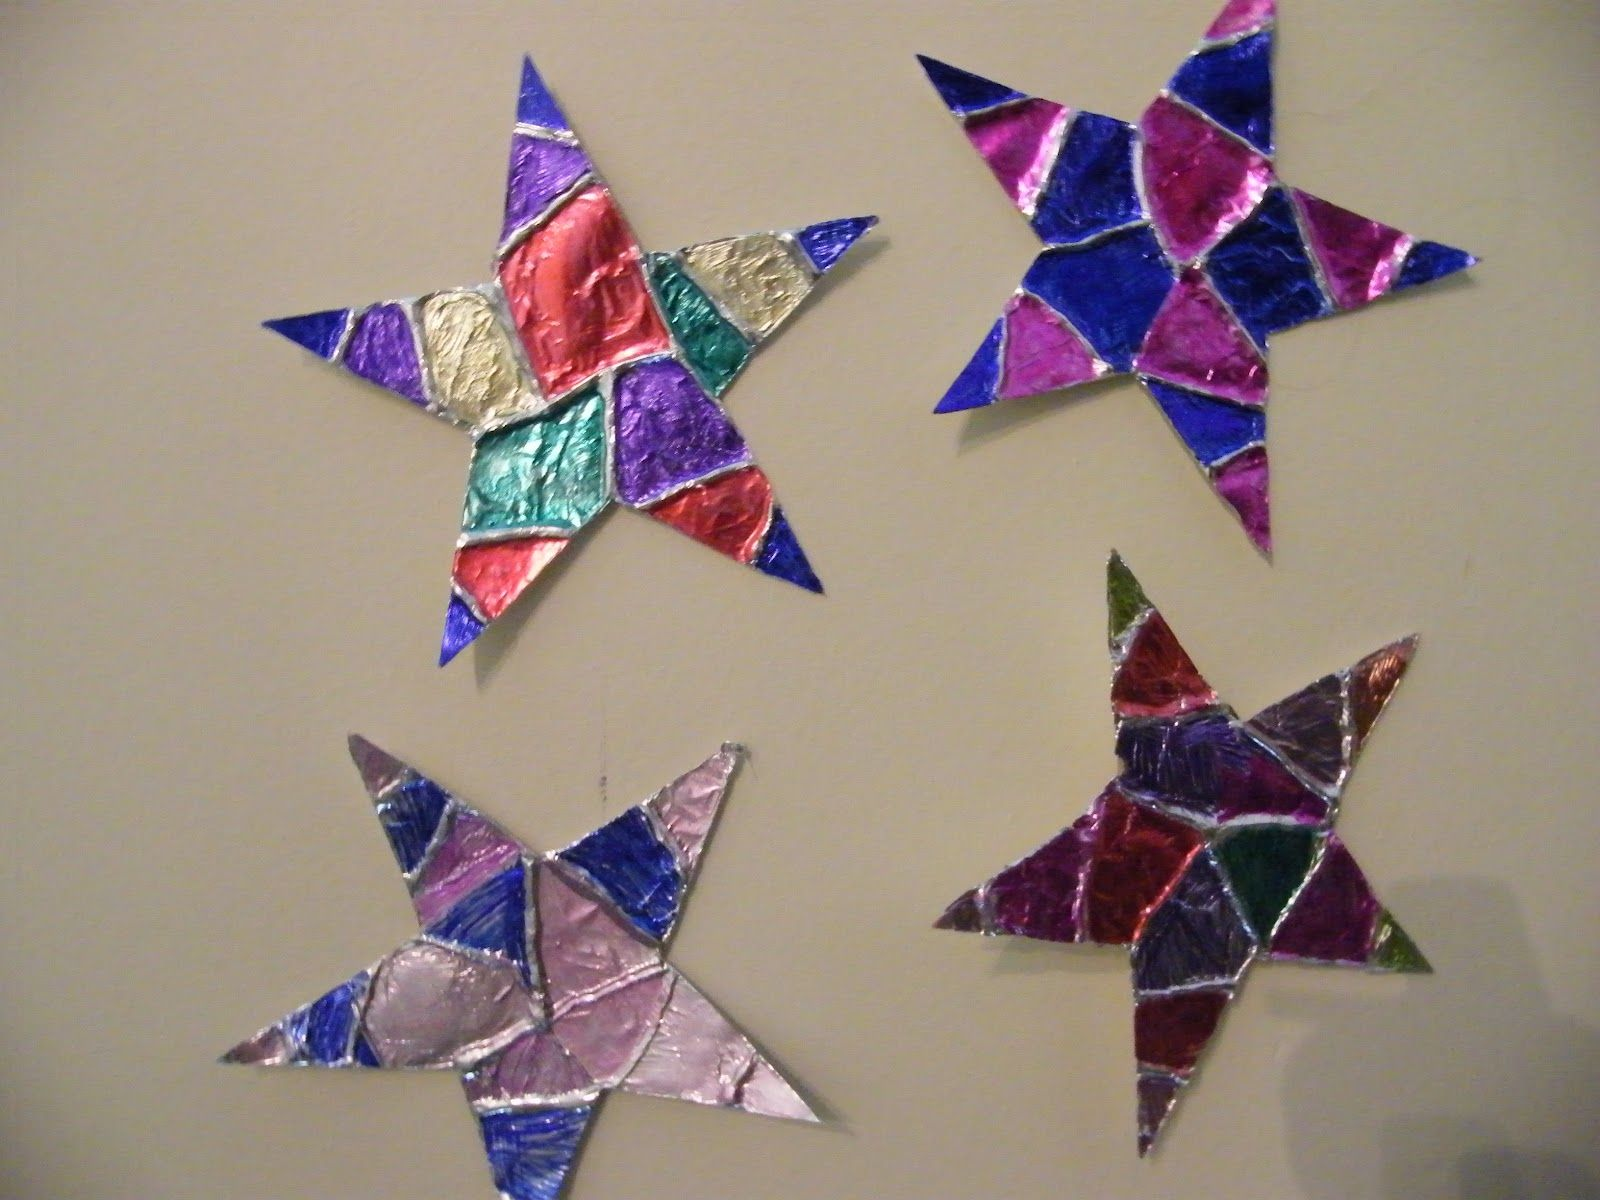 Sunday school crafts for preschool - Stars Out Of Aluminum Foil Glue Gun And Markers For Creation Day 4 Or Kids Churchchurch Ideassunday School